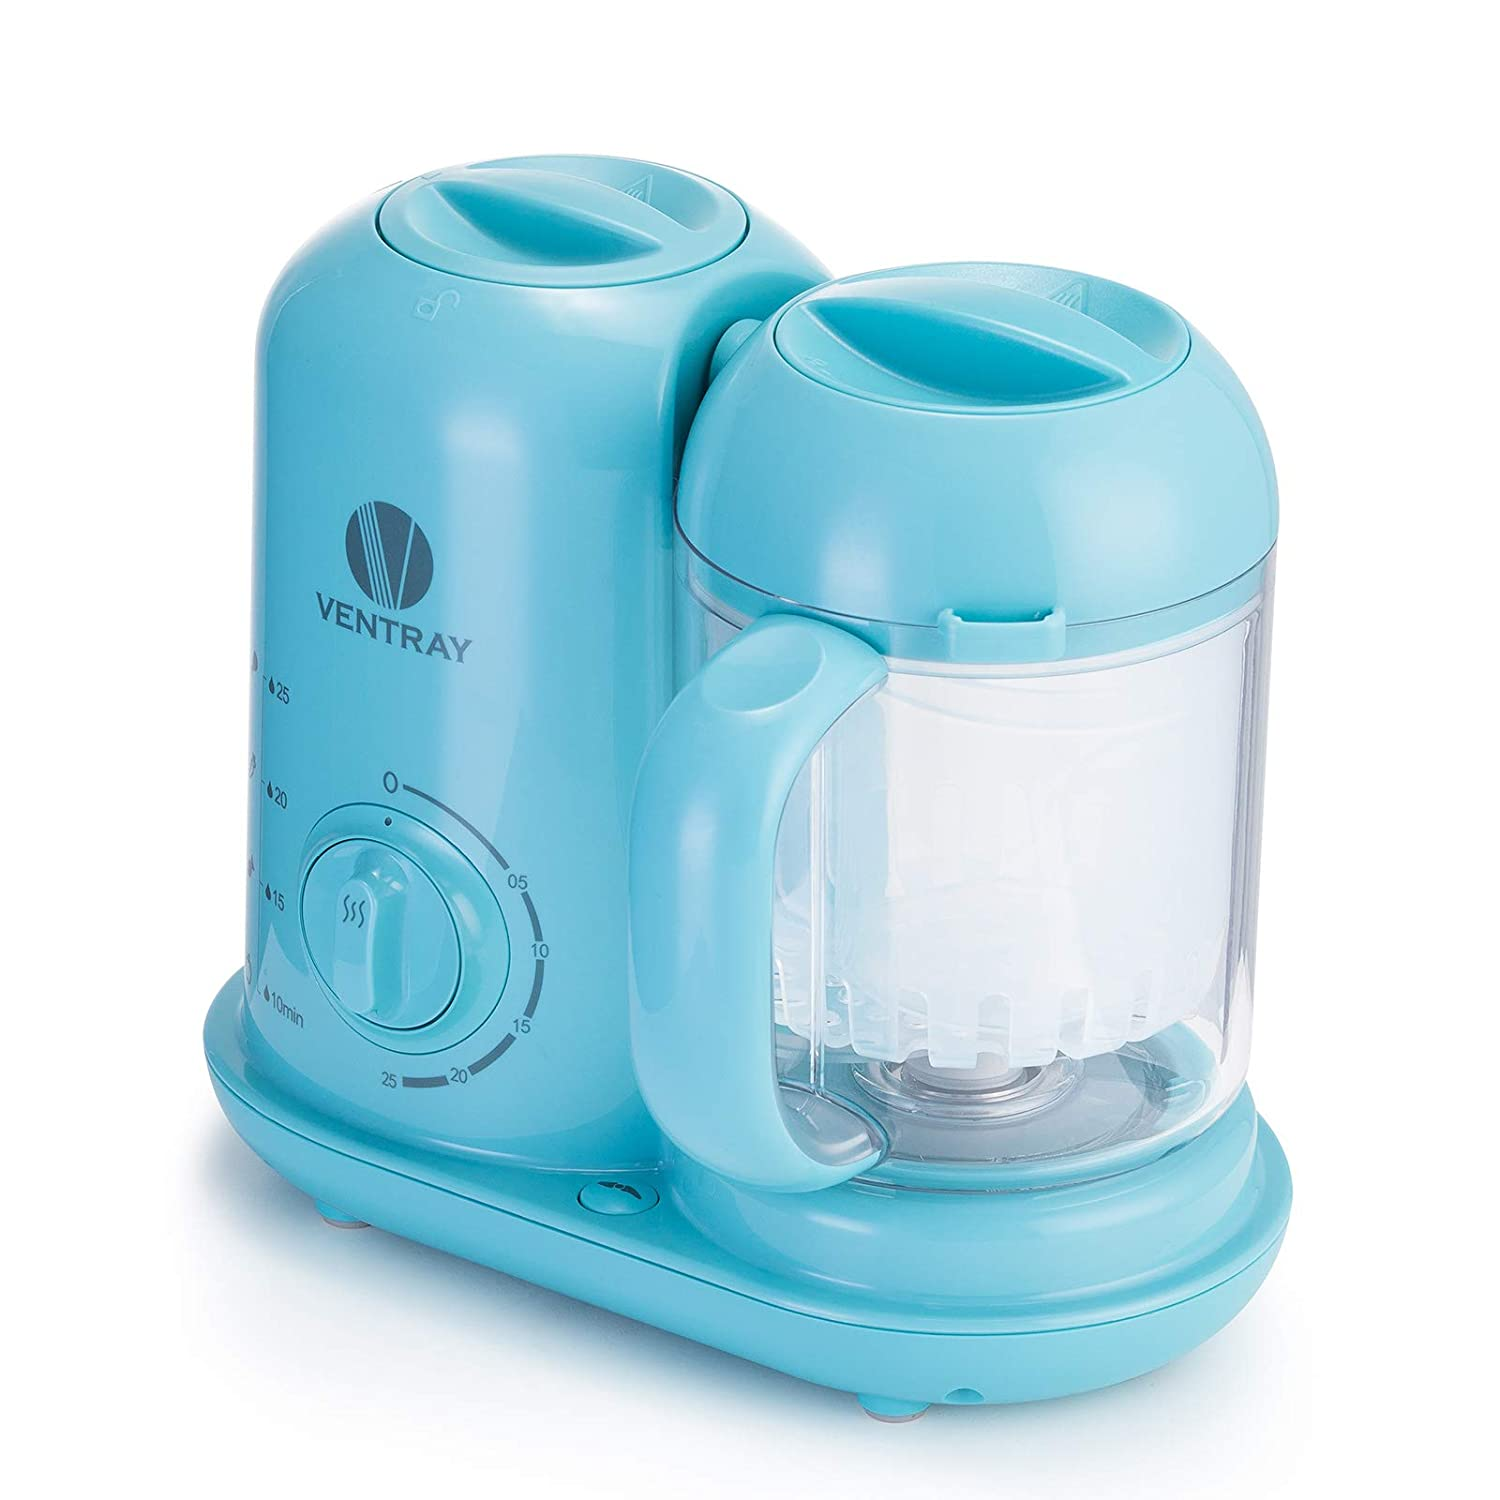 Ventray BabyGrow 100 Blue - All-in-one Blender and Steamer Baby Food Maker - Makes Food for Infants and Toddlers